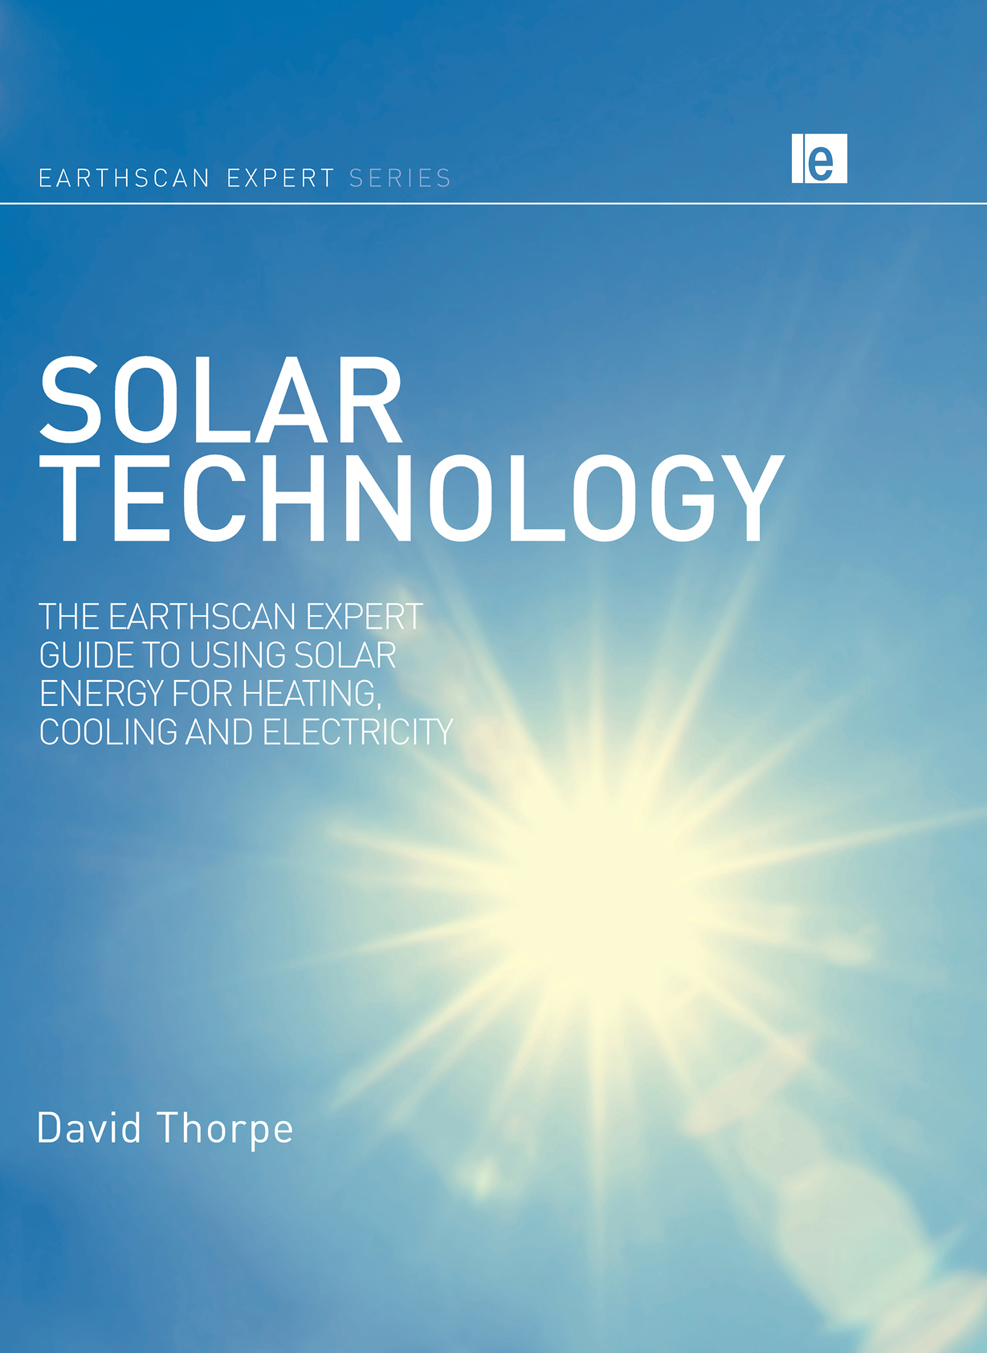 Solar Technology The Earthscan Expert Guide to Using Solar Energy for Heating,  Cooling and Electricity